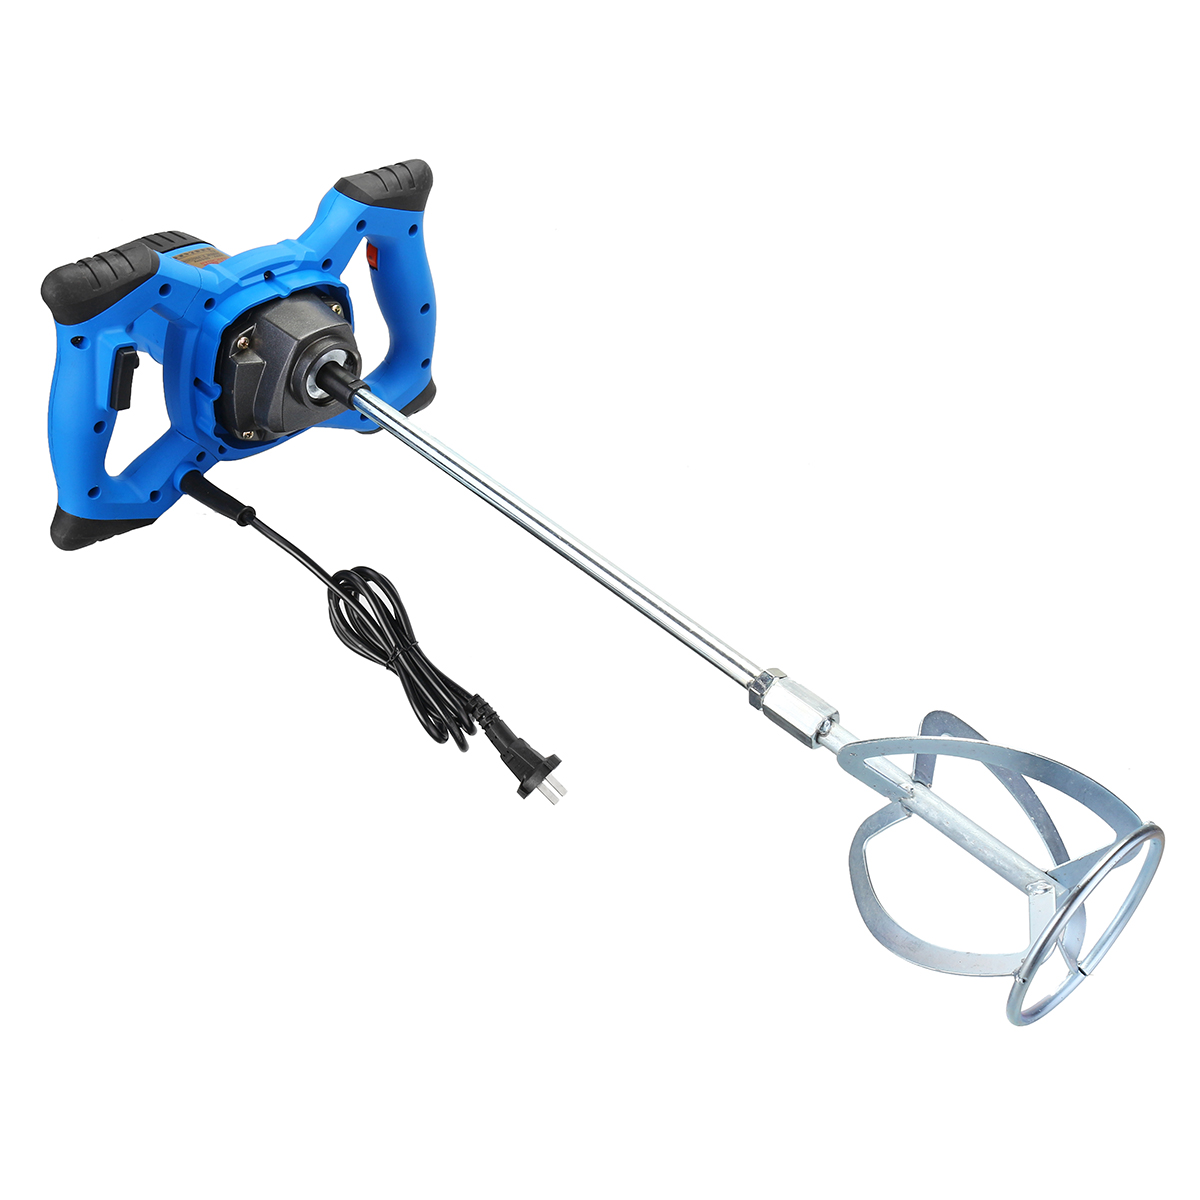 2000W Variable 6 speed Handheld Electric Concrete Cement Mixer Thinset Mortar Grout Blender Cement